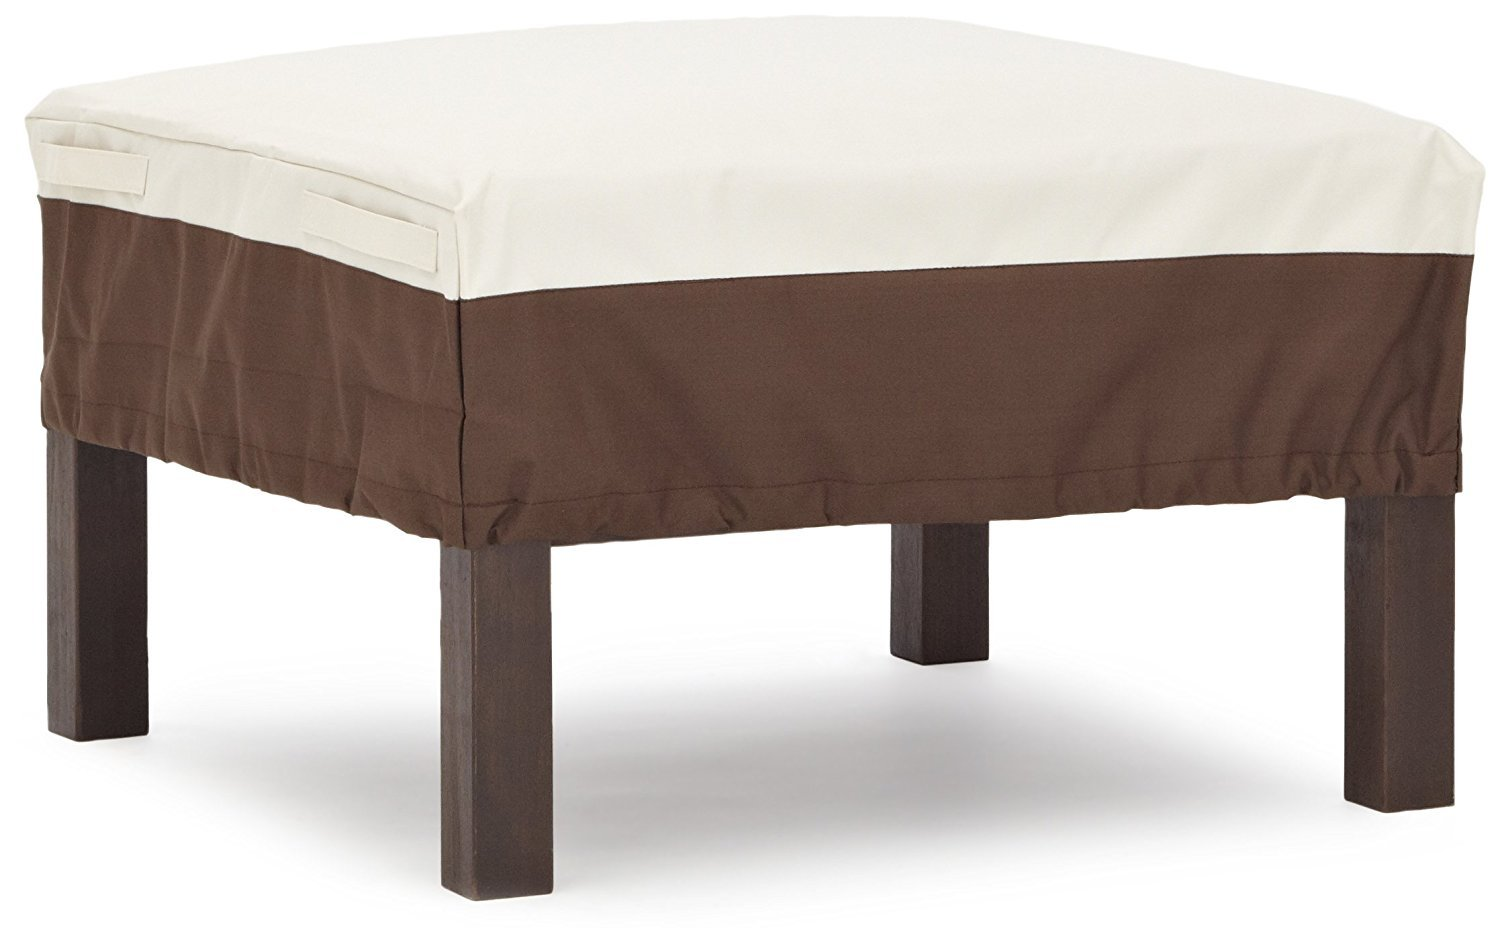 AmazonBasics Side Table Patio Cover